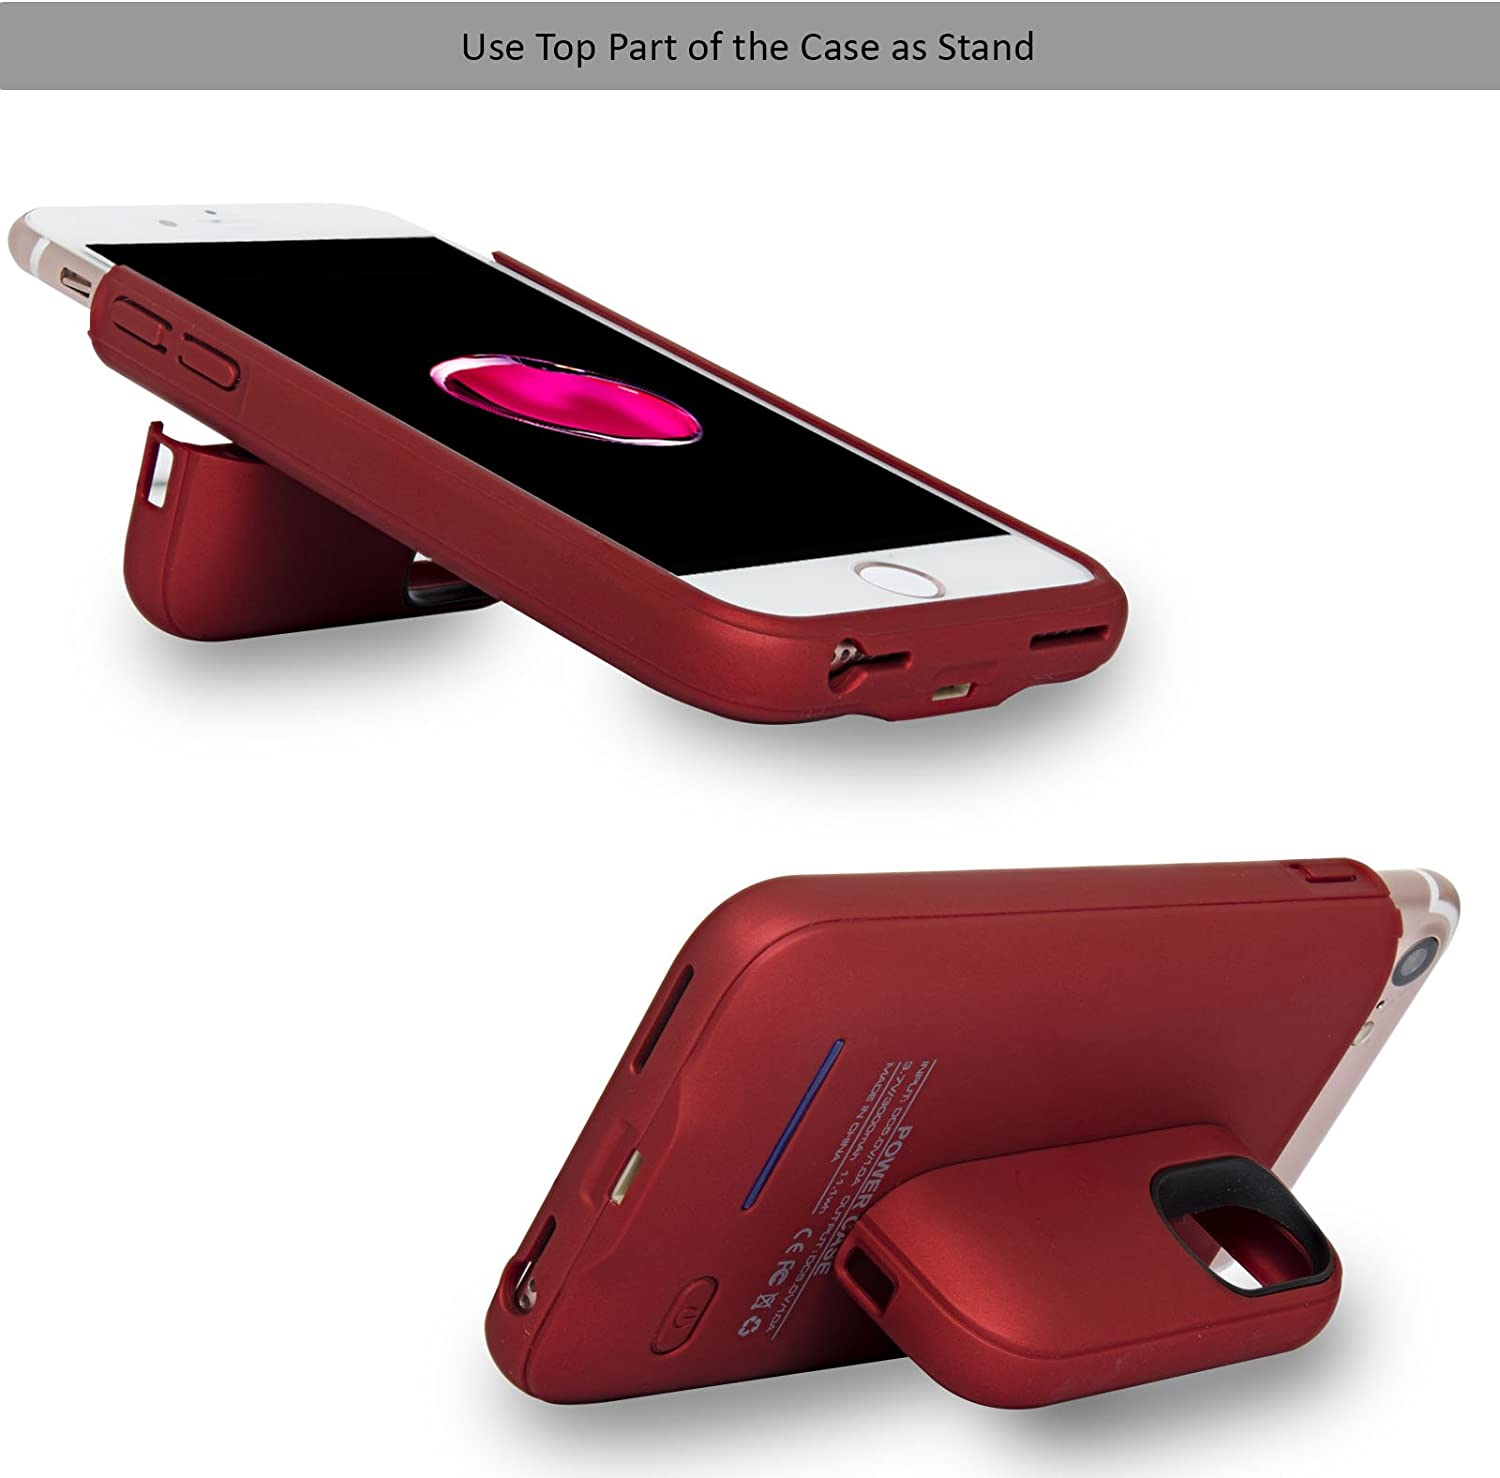 Navor RFID Folio Wallet Magnetic Detachable Power Battery Case 4200mAh for iPhone 7 Plus 8 Plus Rose Gold 6 Plus 5.5 Inch